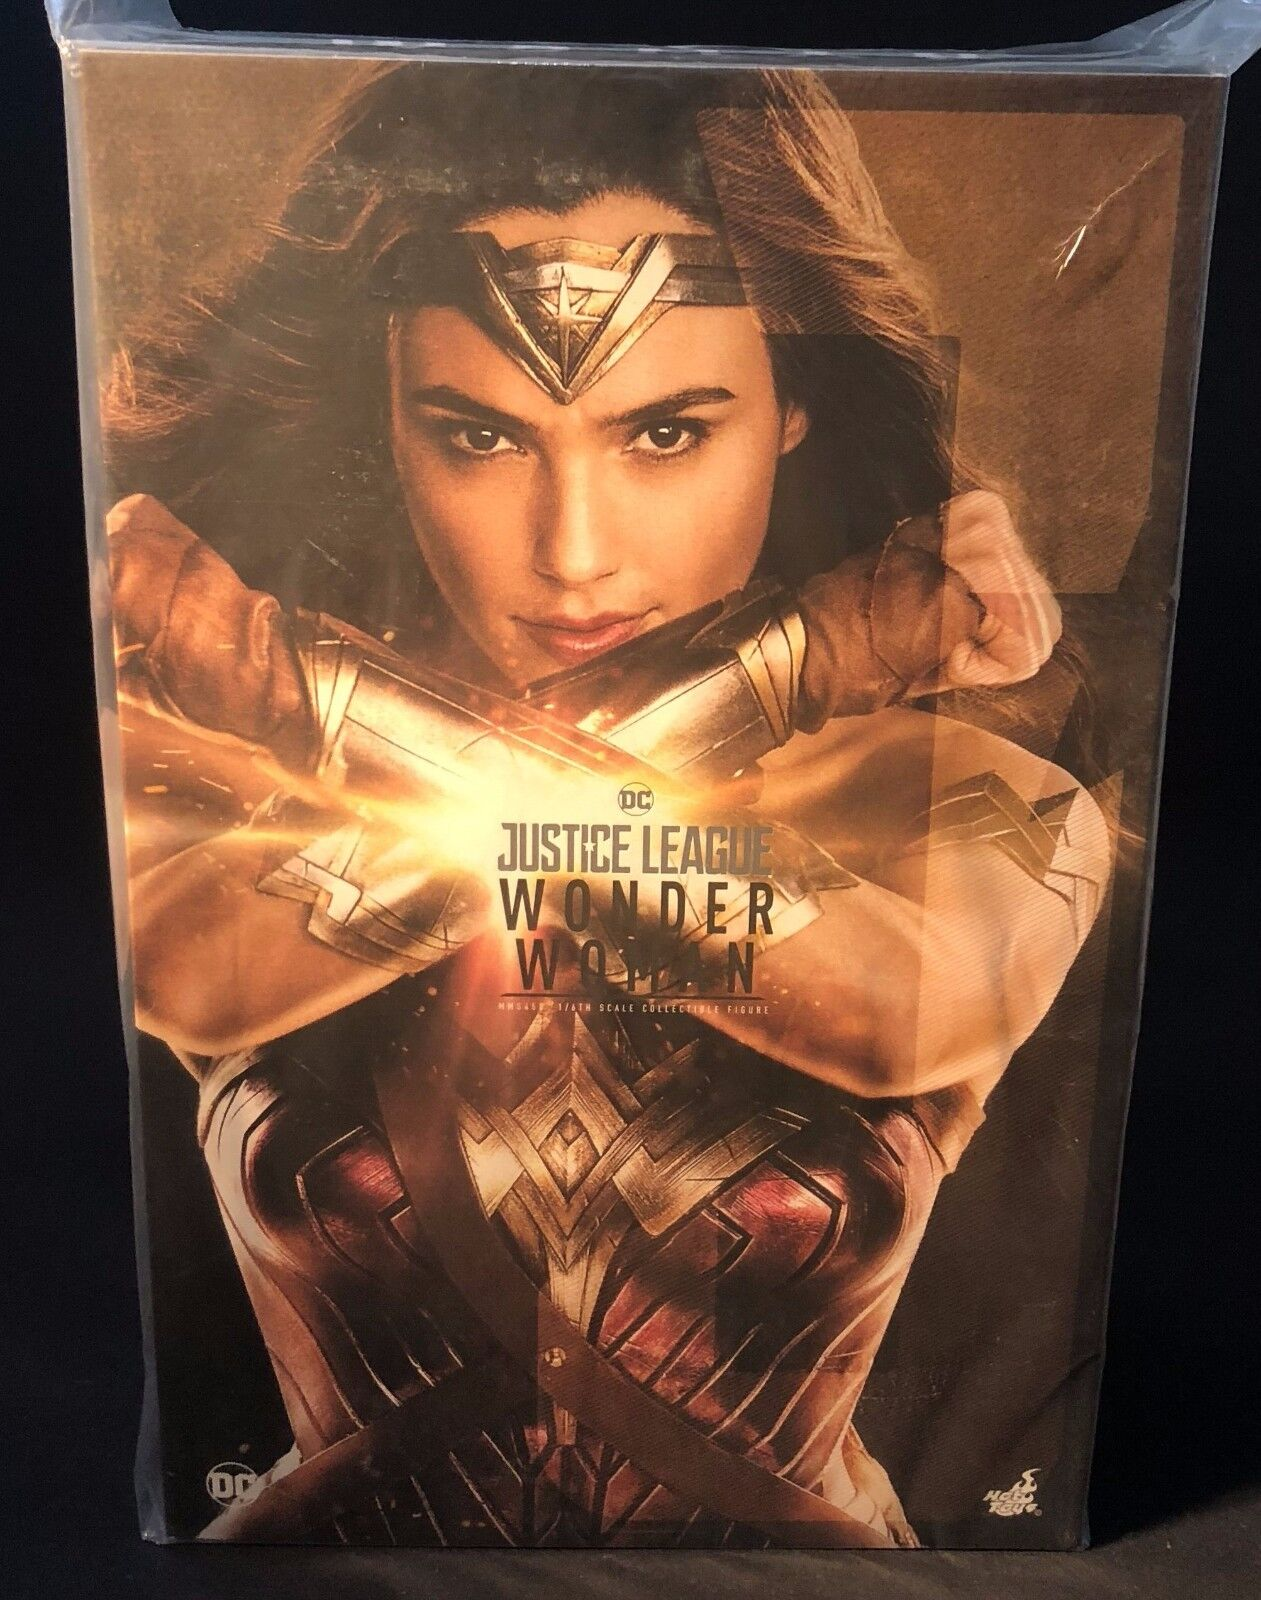 Hot Toys MMS450 Justice League Wonder Woman 3.0 Gal (environ 11.36 L) Gadot 1 6 Figure